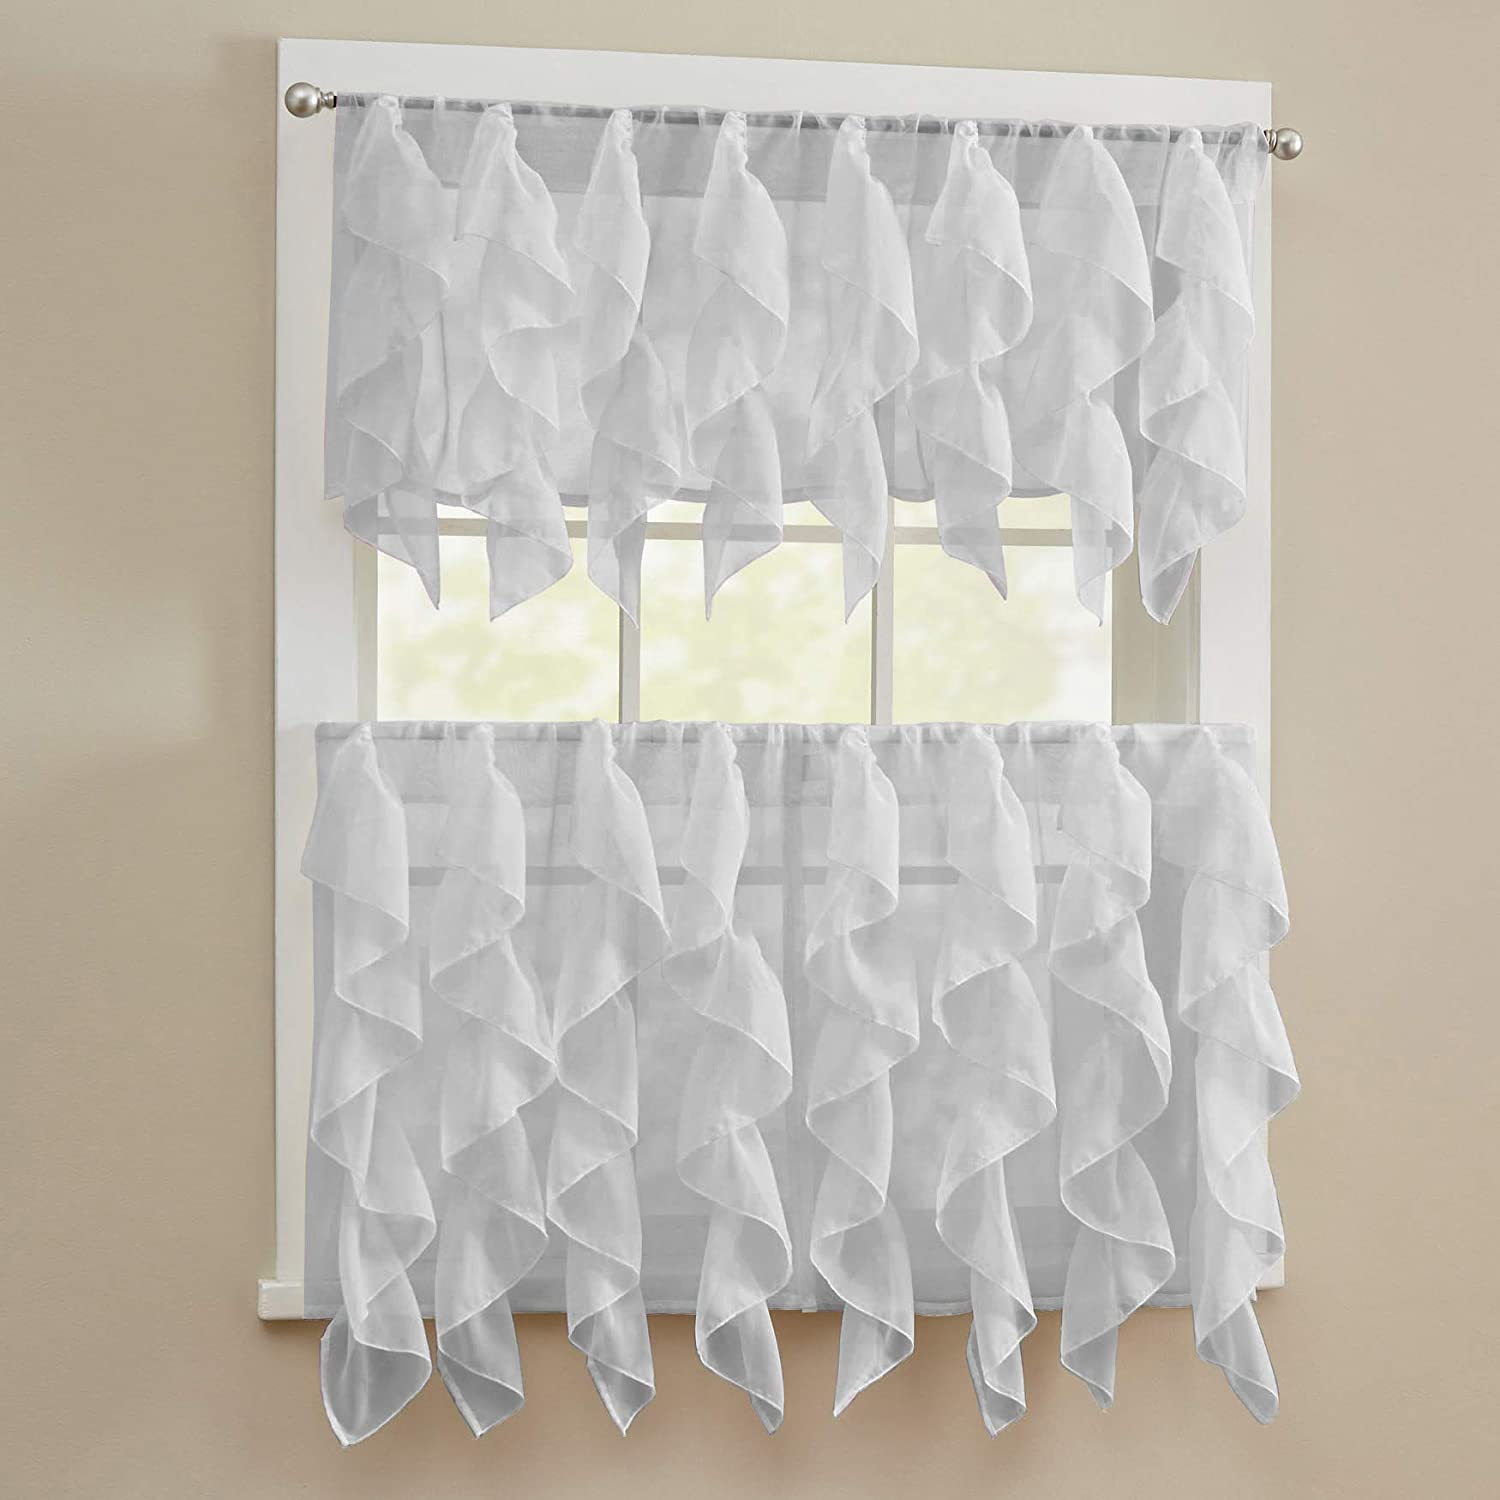 """Sweet Home Collection 3 Piece Kitchen Curtain Set Sheet Vertical Cascading Waterfall Ruffle Includes Valance & Choice of 24"""" or 36"""" Teir Pair Tier, Sheer Silver"""